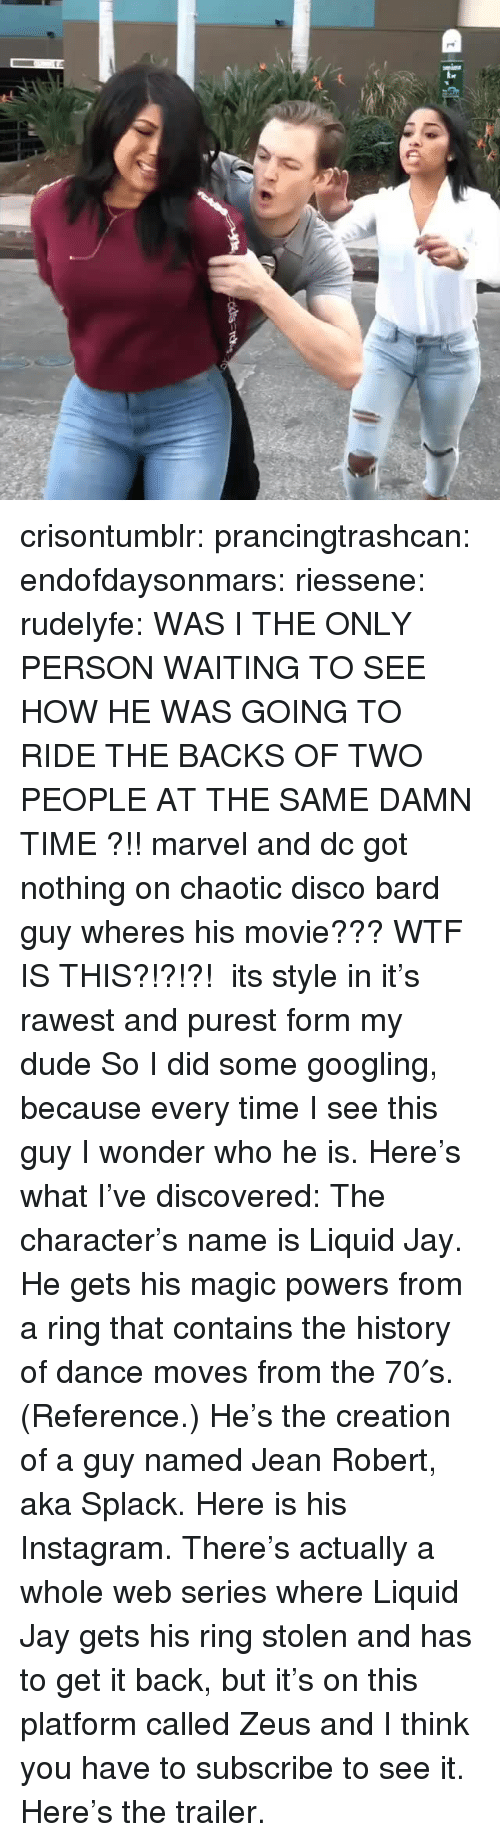 Dude, Instagram, and Jay: crisontumblr: prancingtrashcan:  endofdaysonmars:  riessene:  rudelyfe: WAS I THE ONLY PERSON WAITING TO SEE HOW HE WAS GOING TO RIDE THE BACKS OF TWO PEOPLE AT THE SAME DAMN TIME ?!! marvel and dc got nothing on chaotic disco bard guy wheres his movie???  WTF IS THIS?!?!?!   its style in it's rawest and purest form my dude  So I did some googling, because every time I see this guy I wonder who he is. Here's what I've discovered: The character's name is Liquid Jay. He gets his magic powers from a ring that contains the history of dance moves from the 70′s. (Reference.) He's the creation of a guy named Jean Robert, aka Splack. Here is his Instagram. There's actually a whole web series where Liquid Jay gets his ring stolen and has to get it back, but it's on this platform called Zeus and I think you have to subscribe to see it. Here's the trailer.